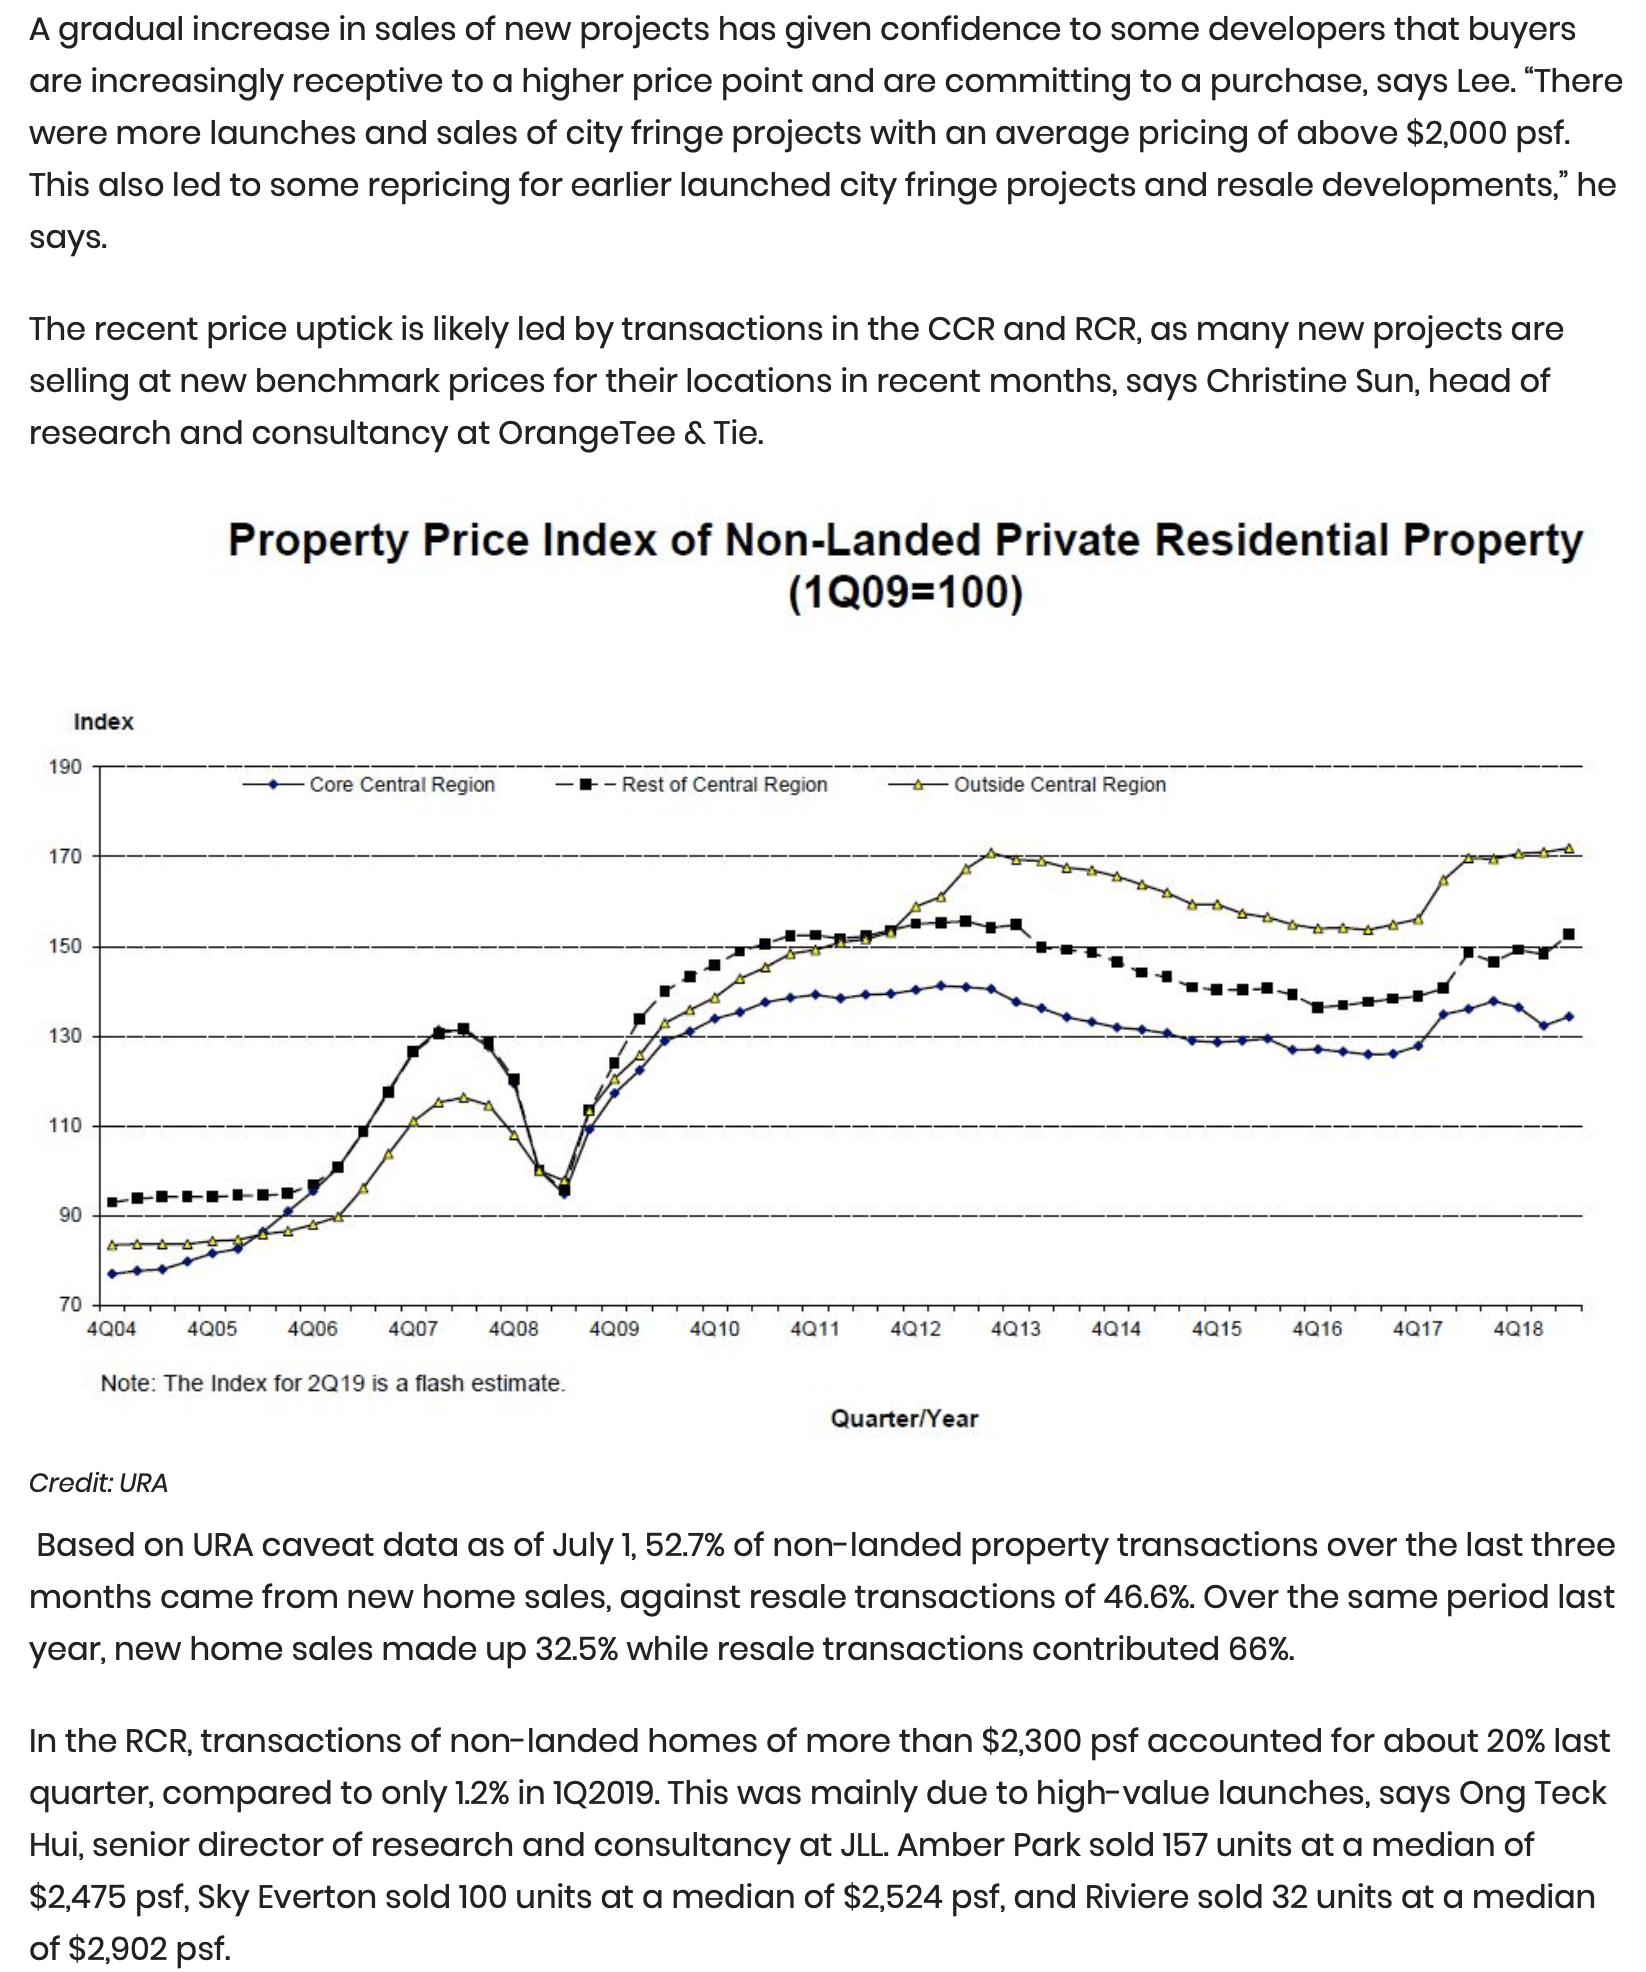 Private residential price index climbs 1.3% in 2Q2019 - 2